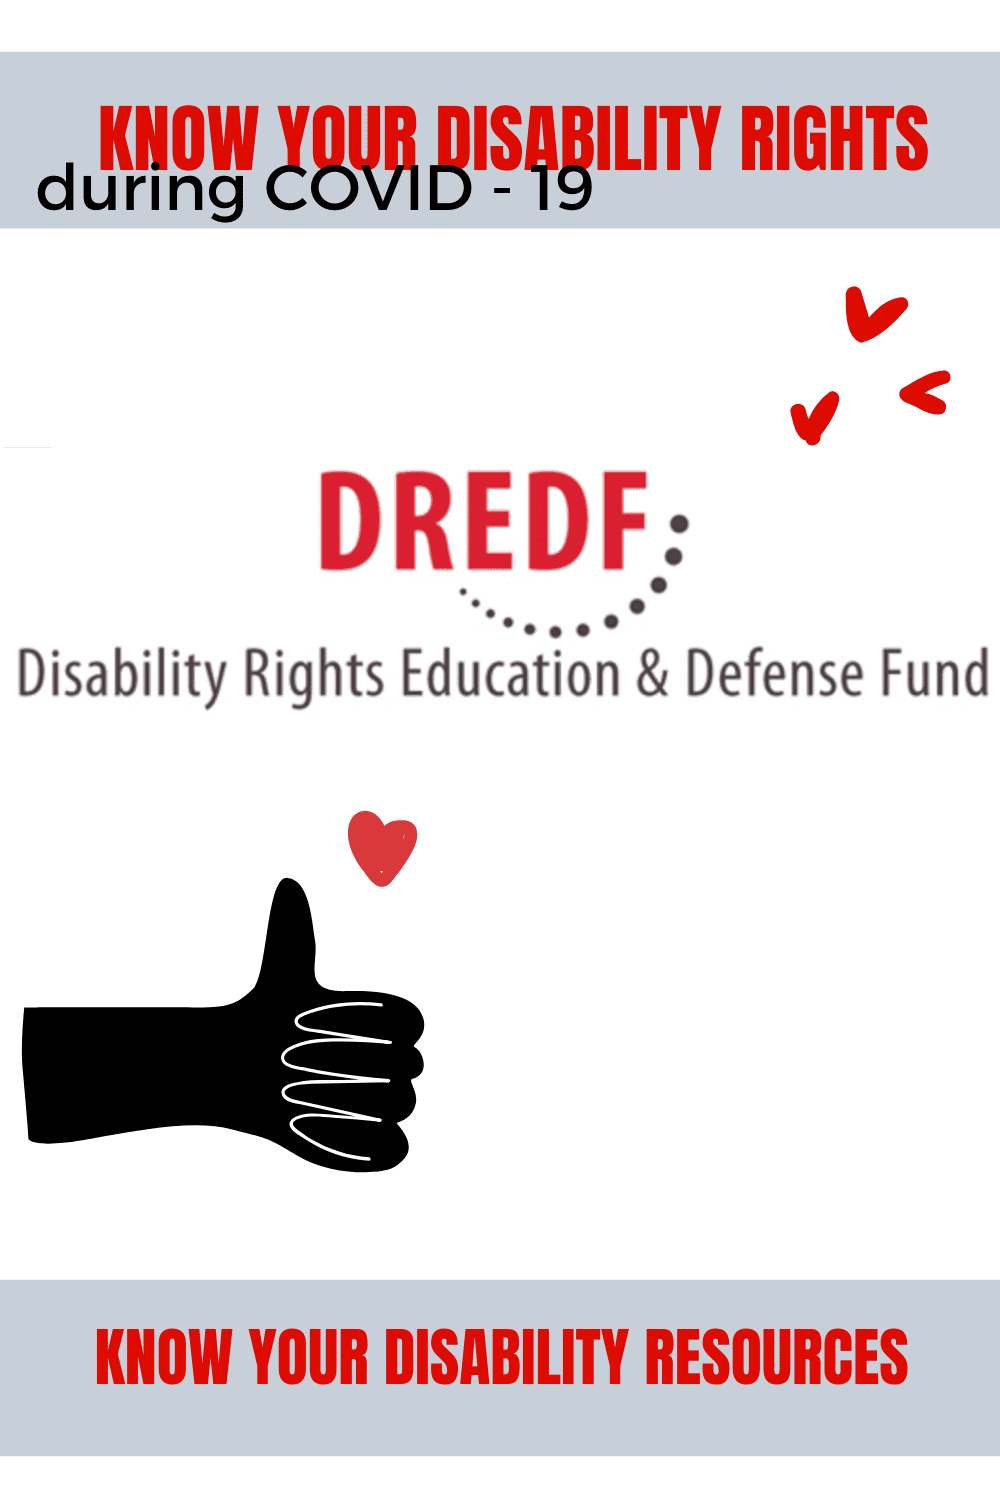 "disability resources: dredf (image of white background, dredf logo which is red text reading ""DREDF"" and black text reading ""disability rights education & defense fund""; bottom corner has a black thumbs up with a red heart over it; top right has 3 hearts and on the top of the image is a grey bar with red text that reads, ""know your disability rights * know your disability resources"" and in black below the red text, reads, ""during COVID-19"""